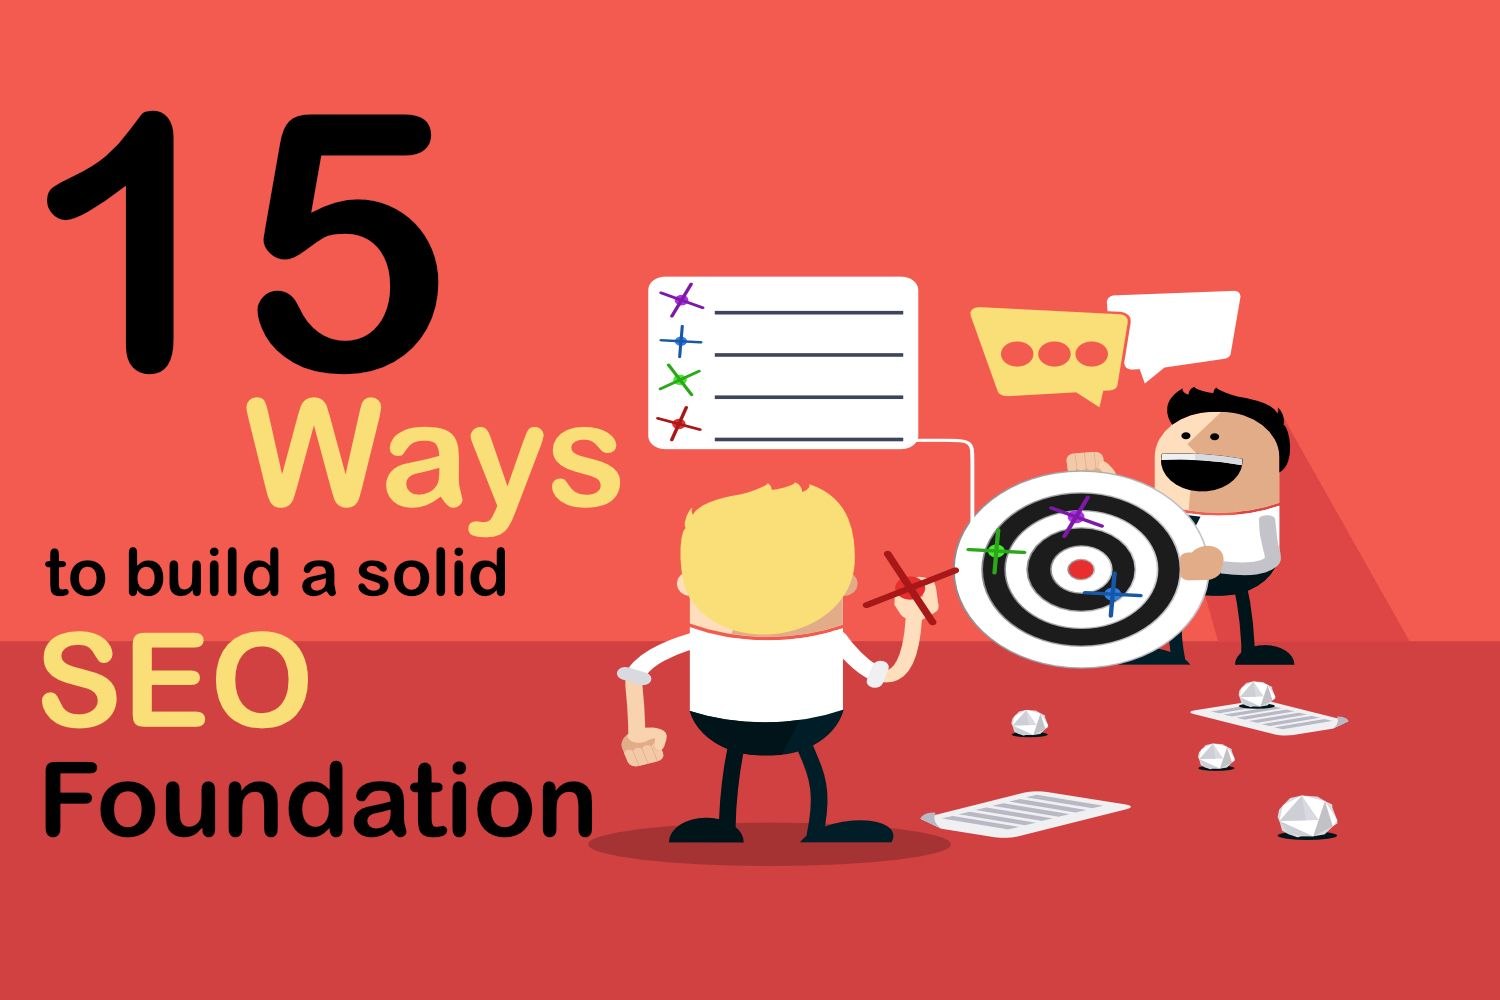 15 Ways to Build a Solid SEO Foundation